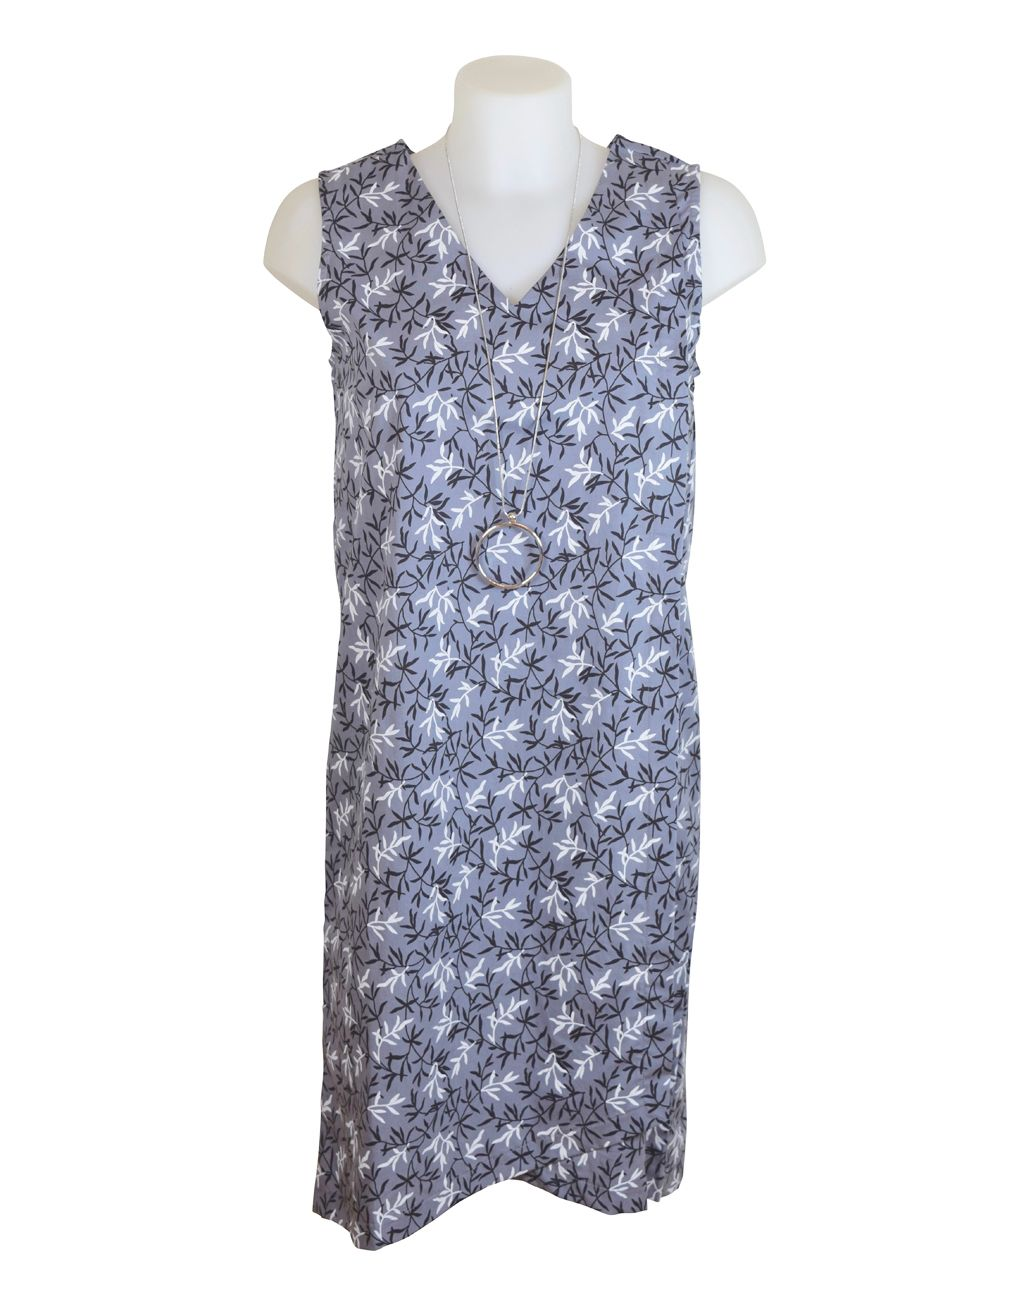 Alice Collins Summer Dress Okaleaf Grey 8 XS